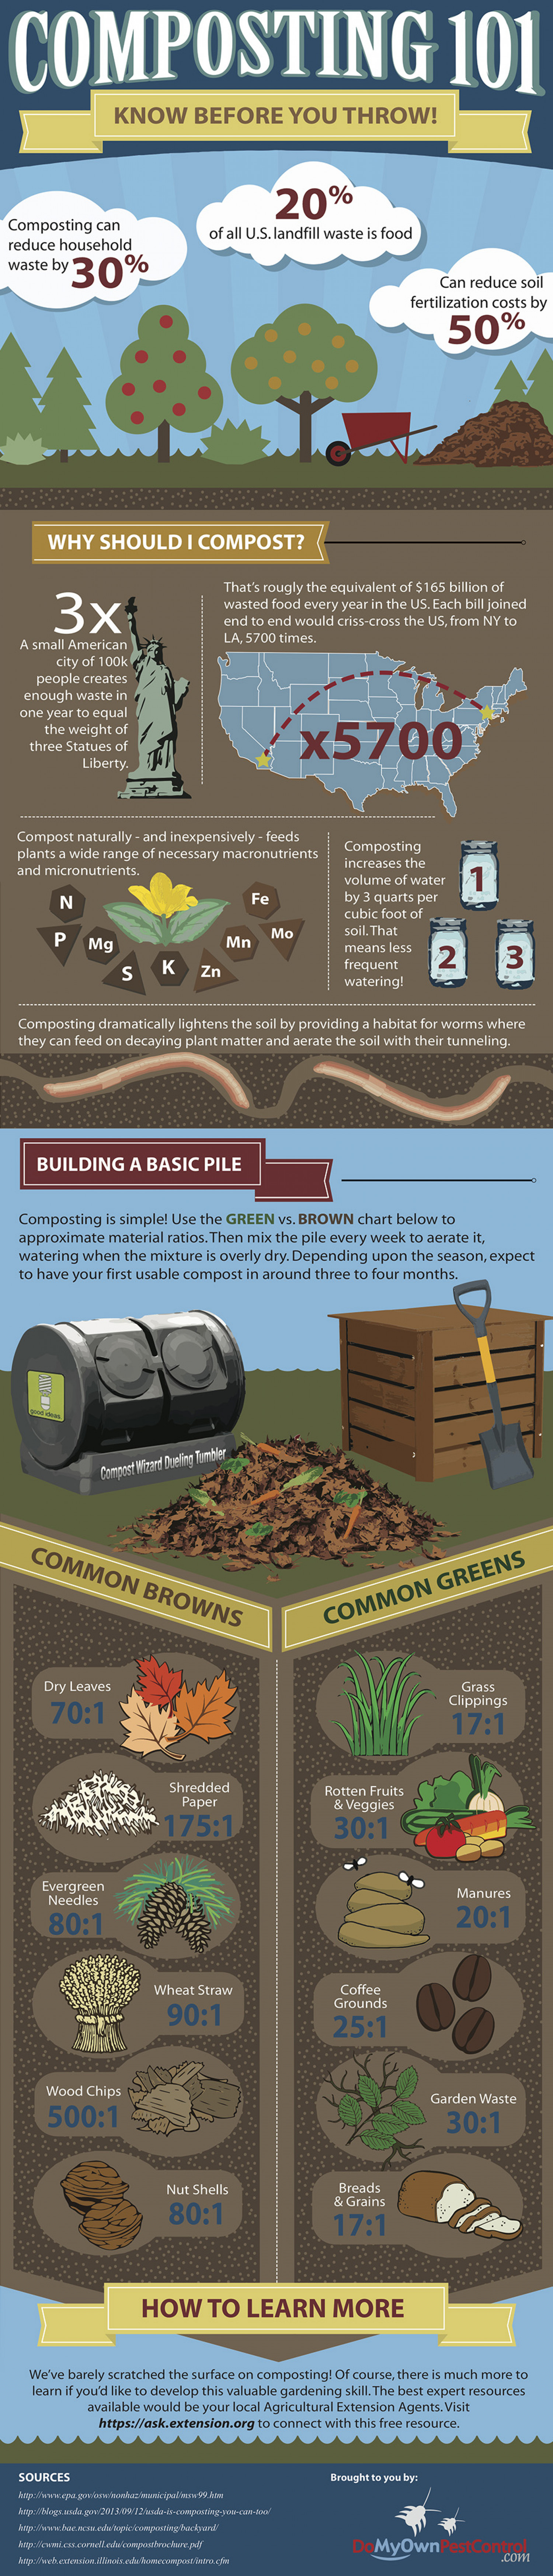 Composting 101 Infographic